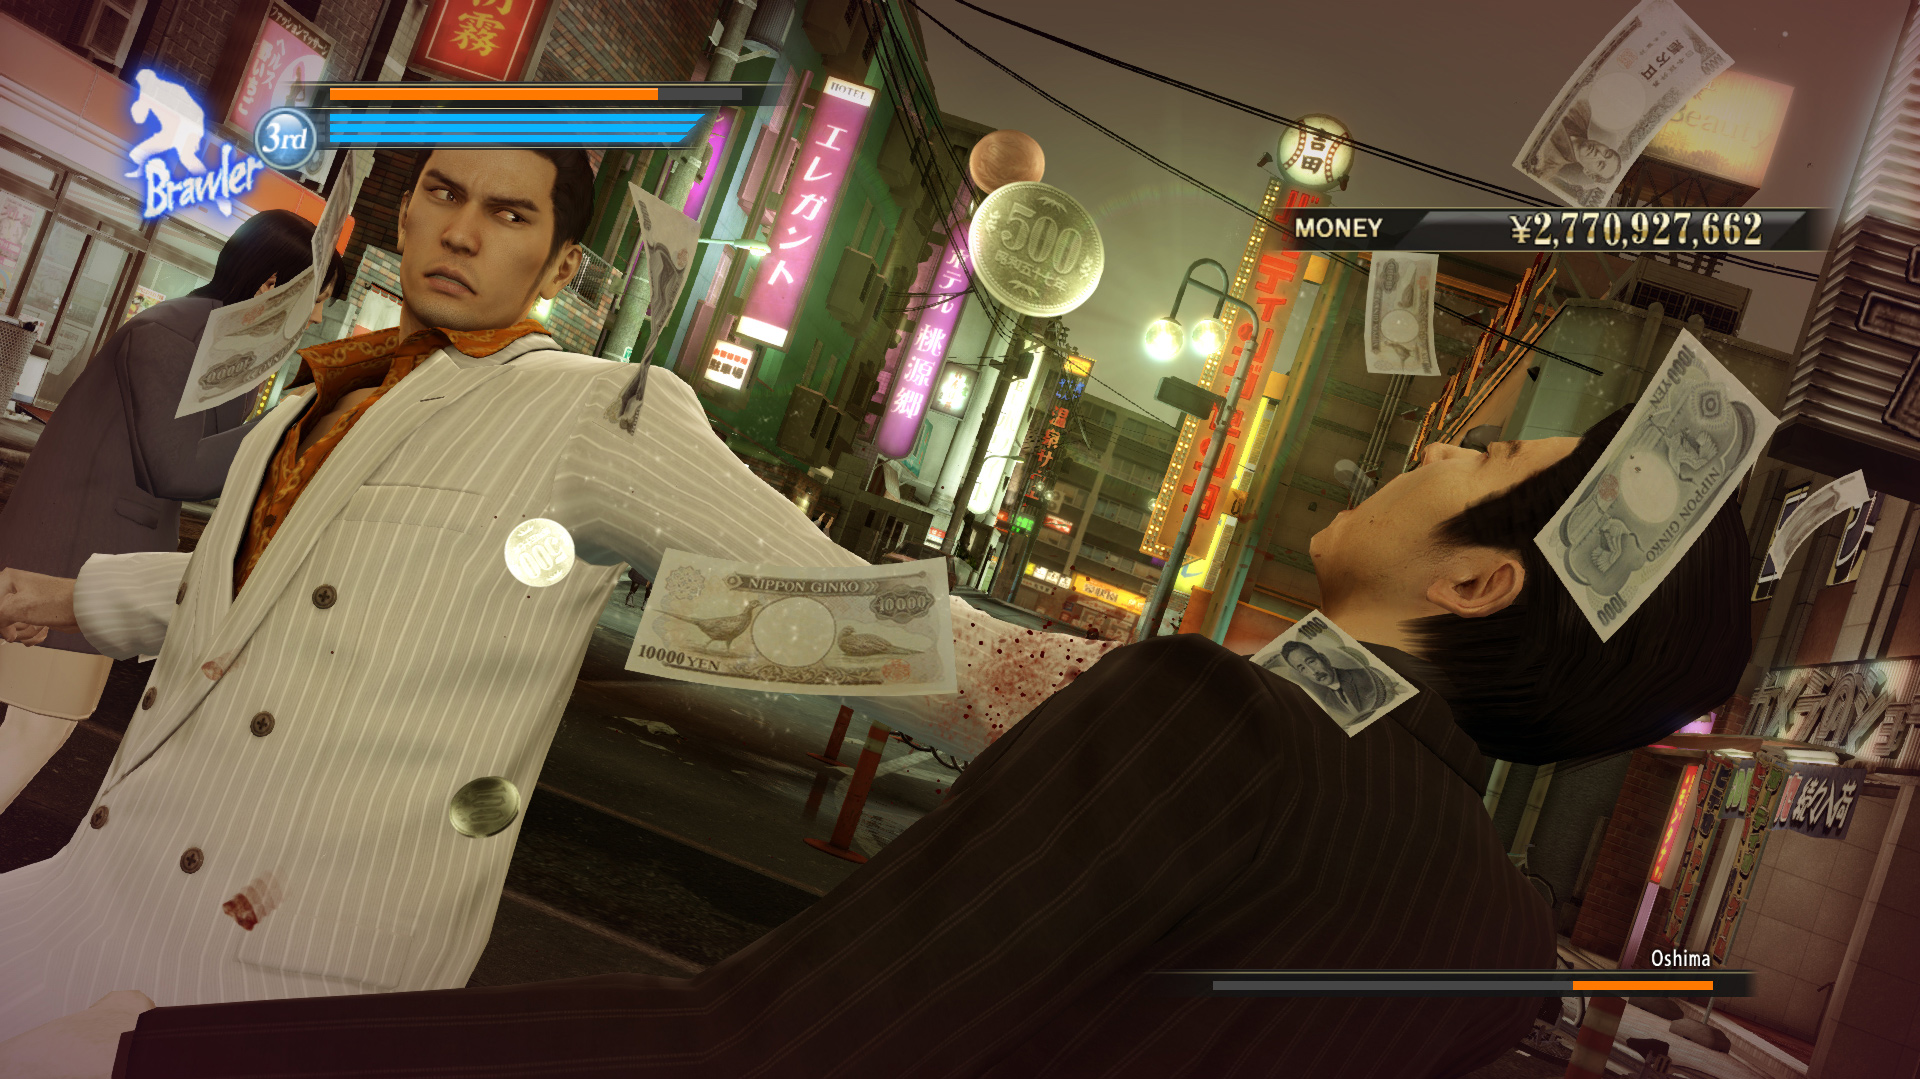 You can play three Yakuza games for free until Sunday if you have Xbox Live Gold screenshot